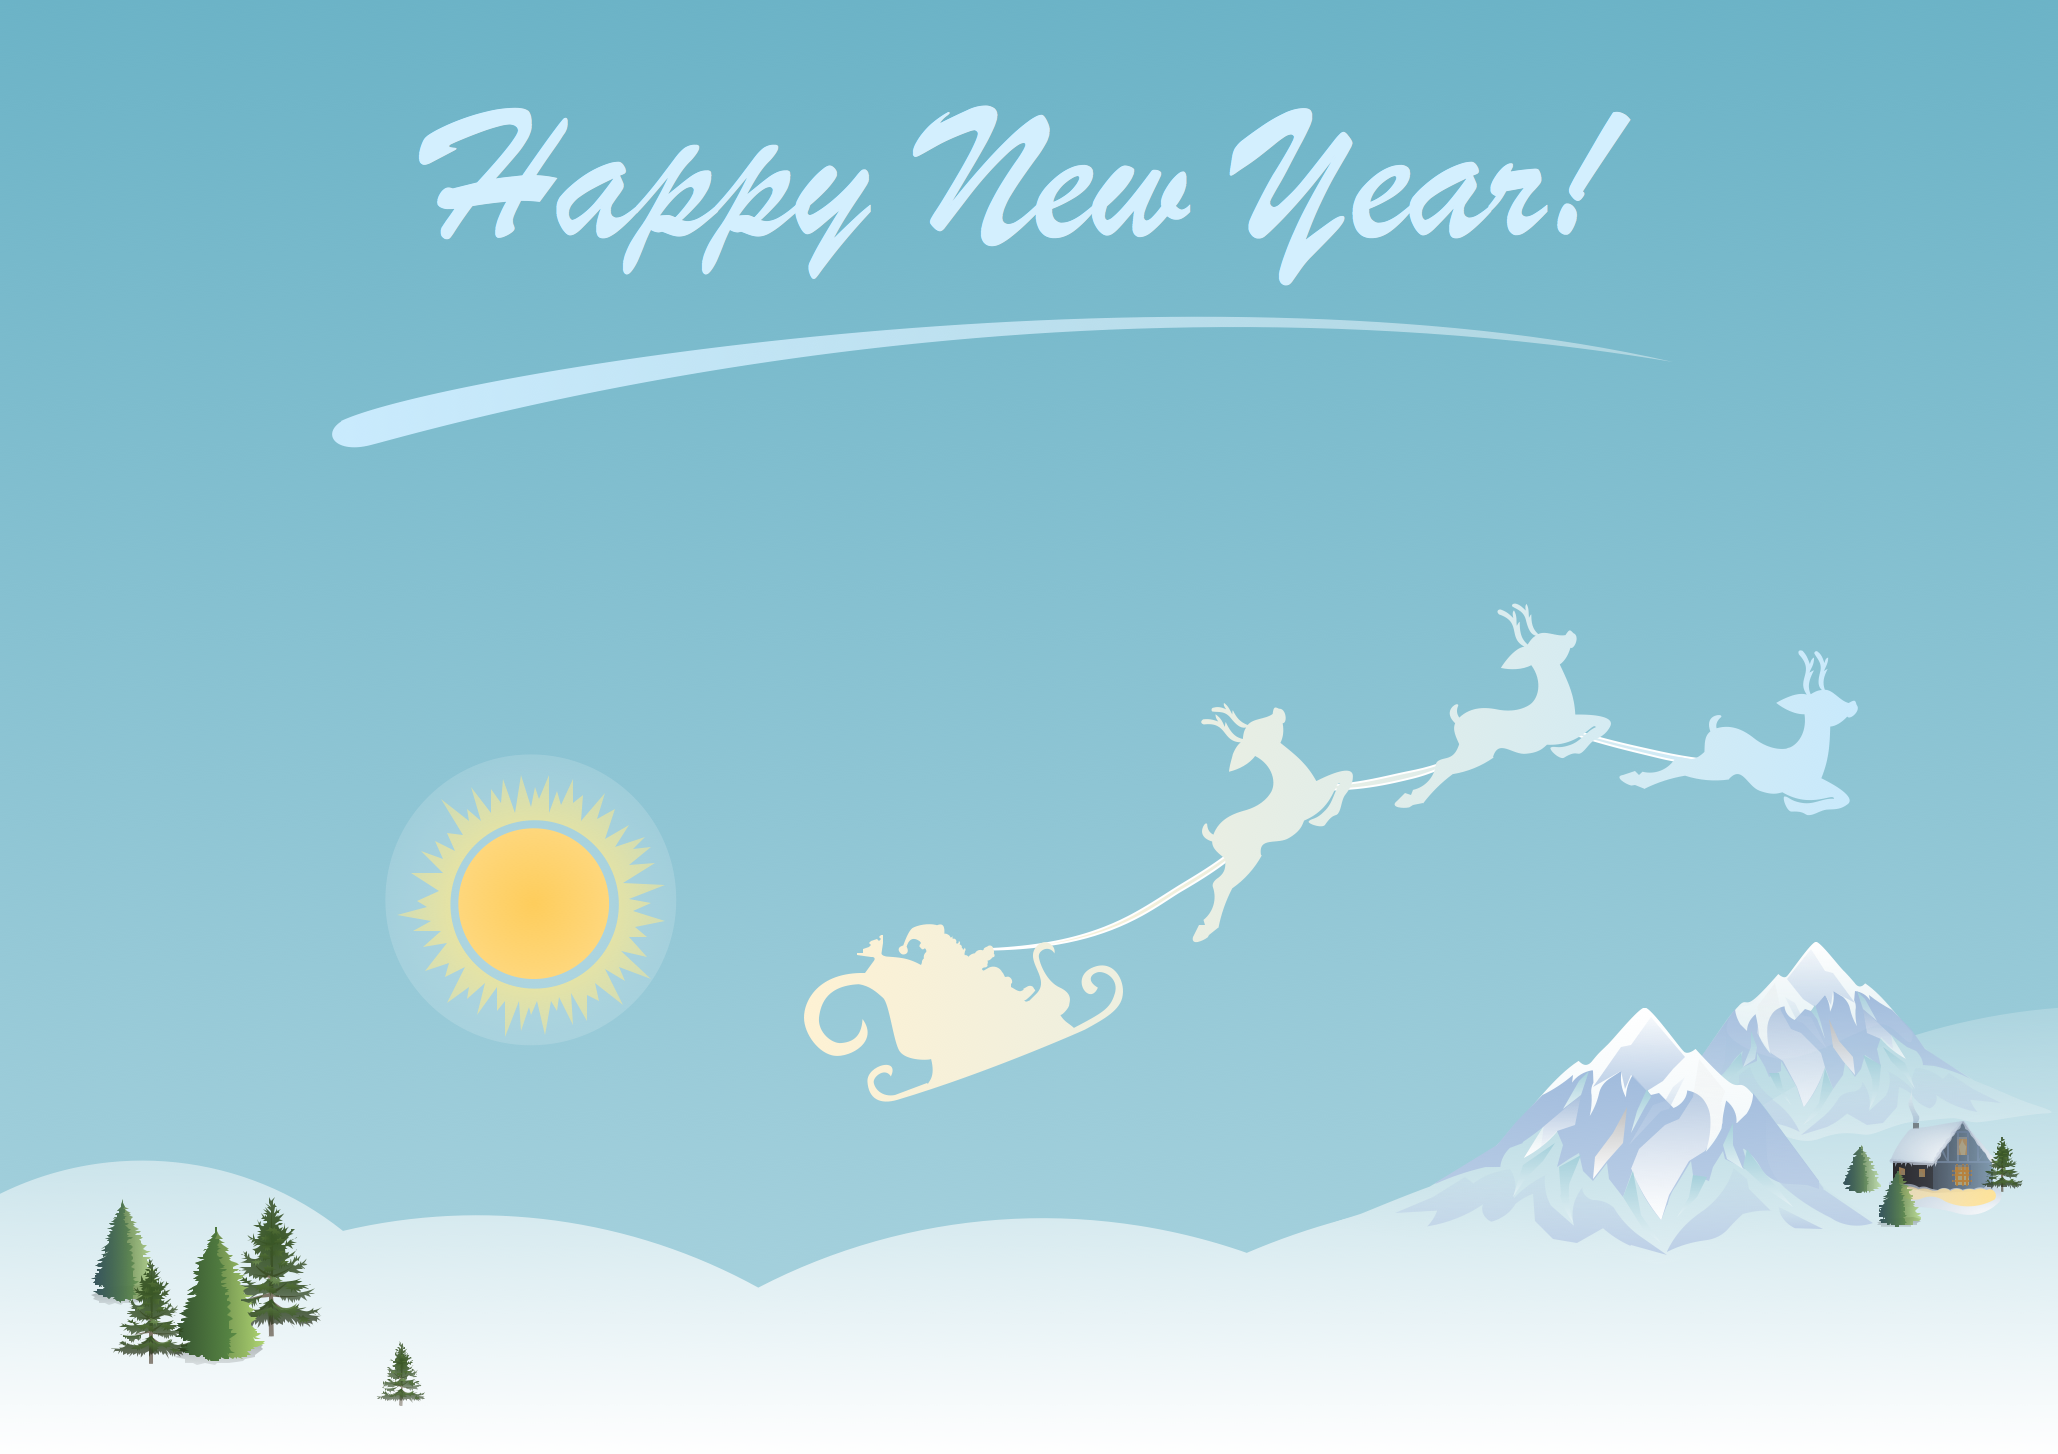 New Year Card - Winter Day